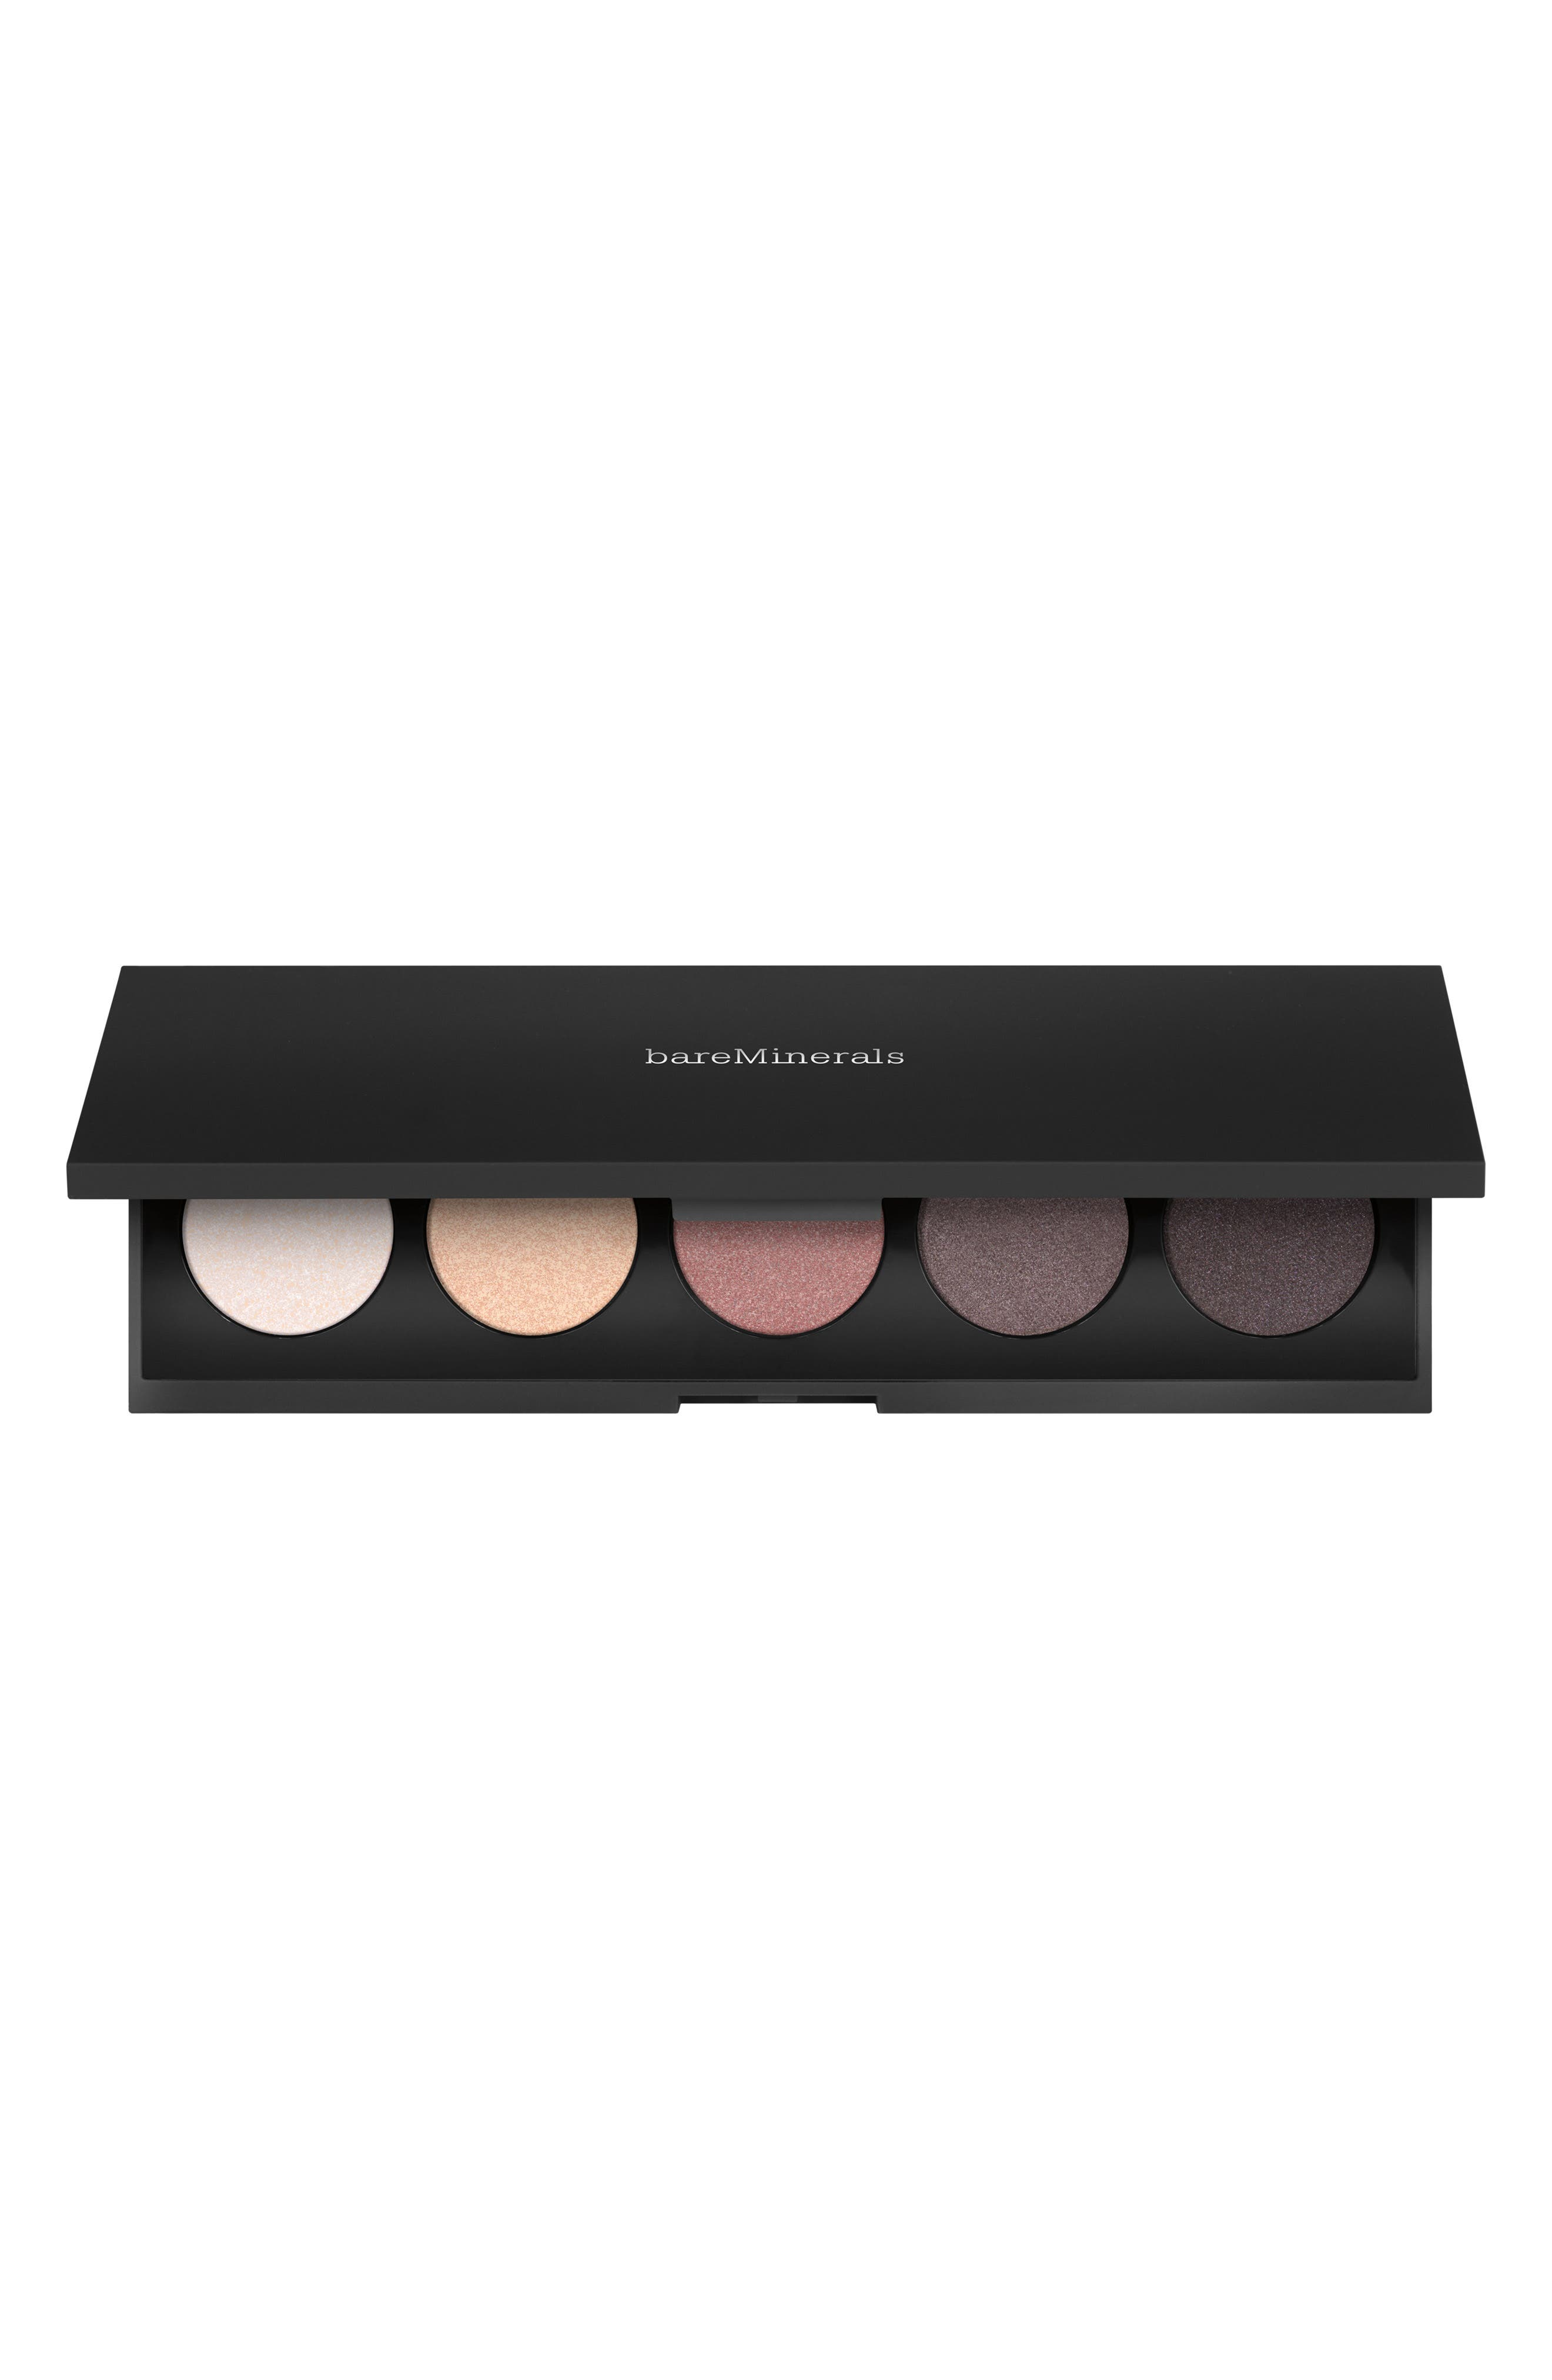 What it is: A palette of fingertip-friendly, bouncy powder eyeshadows that build and blend effortlessly for sheer to bold color that\\\'s beautifully blurred. What it does: This weightless cream-powder eyeshadow resists creasing, fallout and blends like a dream without the need for a brush. Each eyeshadow is formulated with a Blurring Mineral Complex, which creates a soft-focus, diffused finish while helping to blur the look of fine lines around the